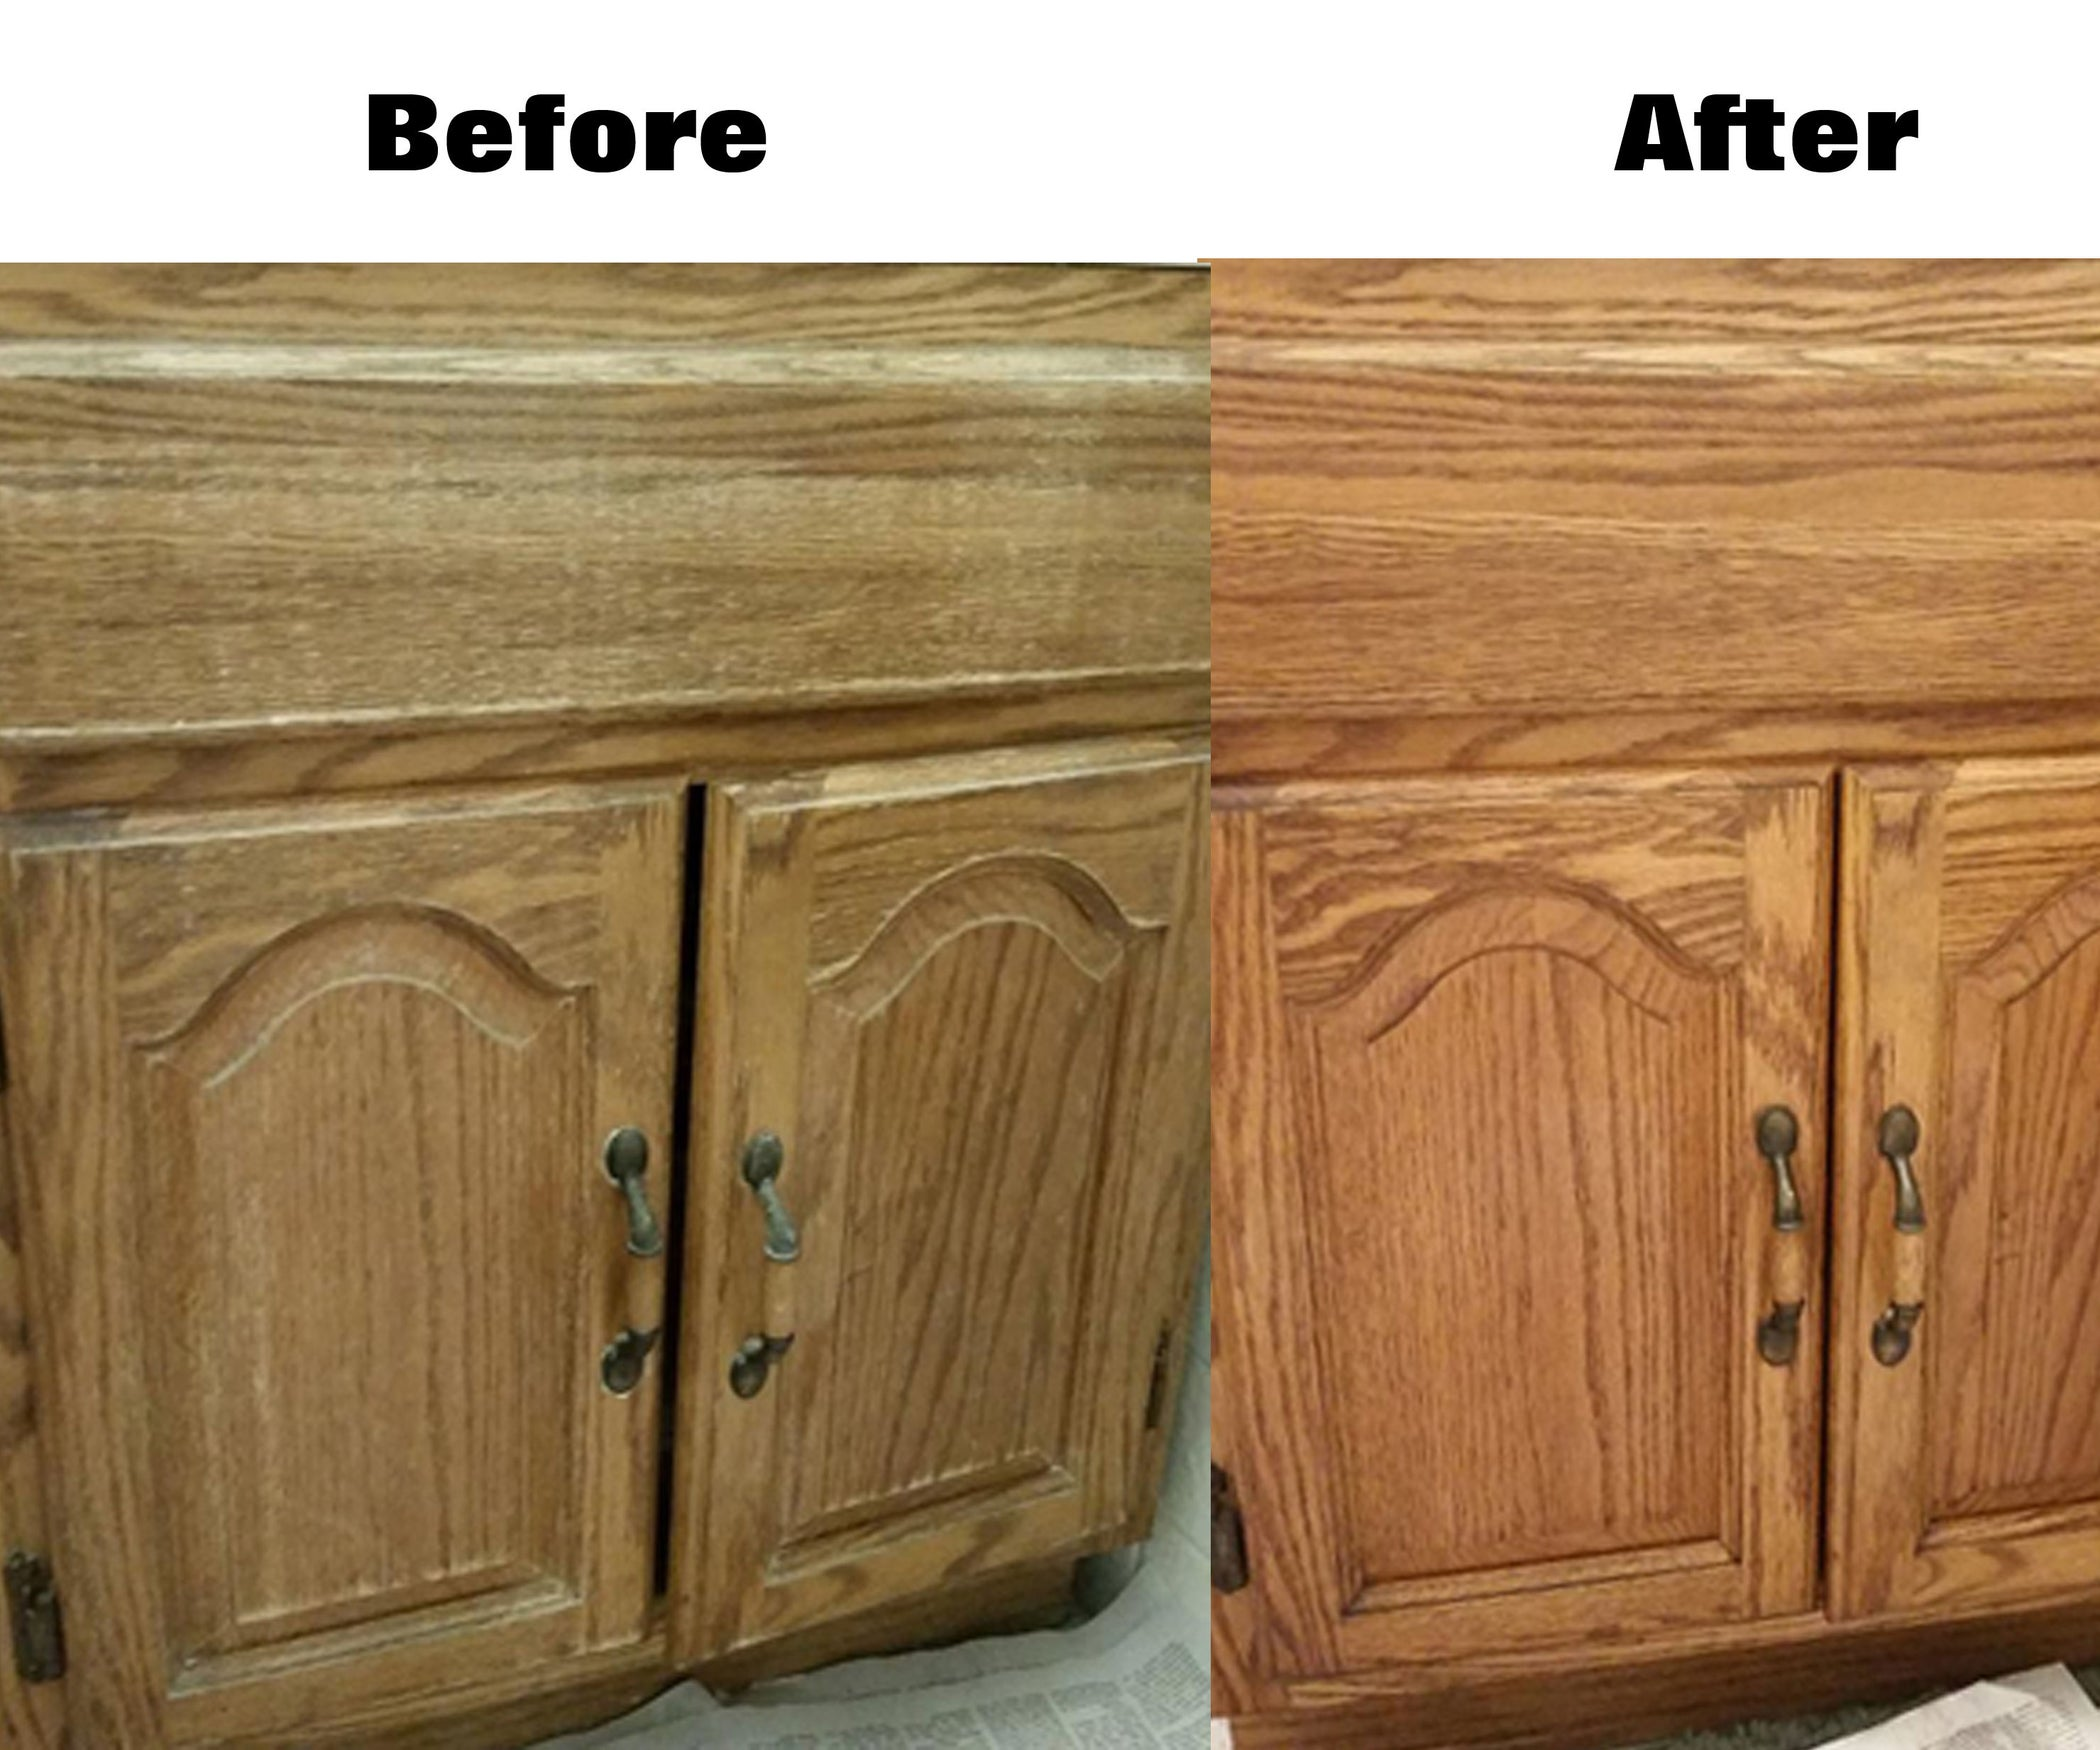 Easily Renew Wood Cabinets Without Actually Refinishing 6 Steps With Pictures Instructables